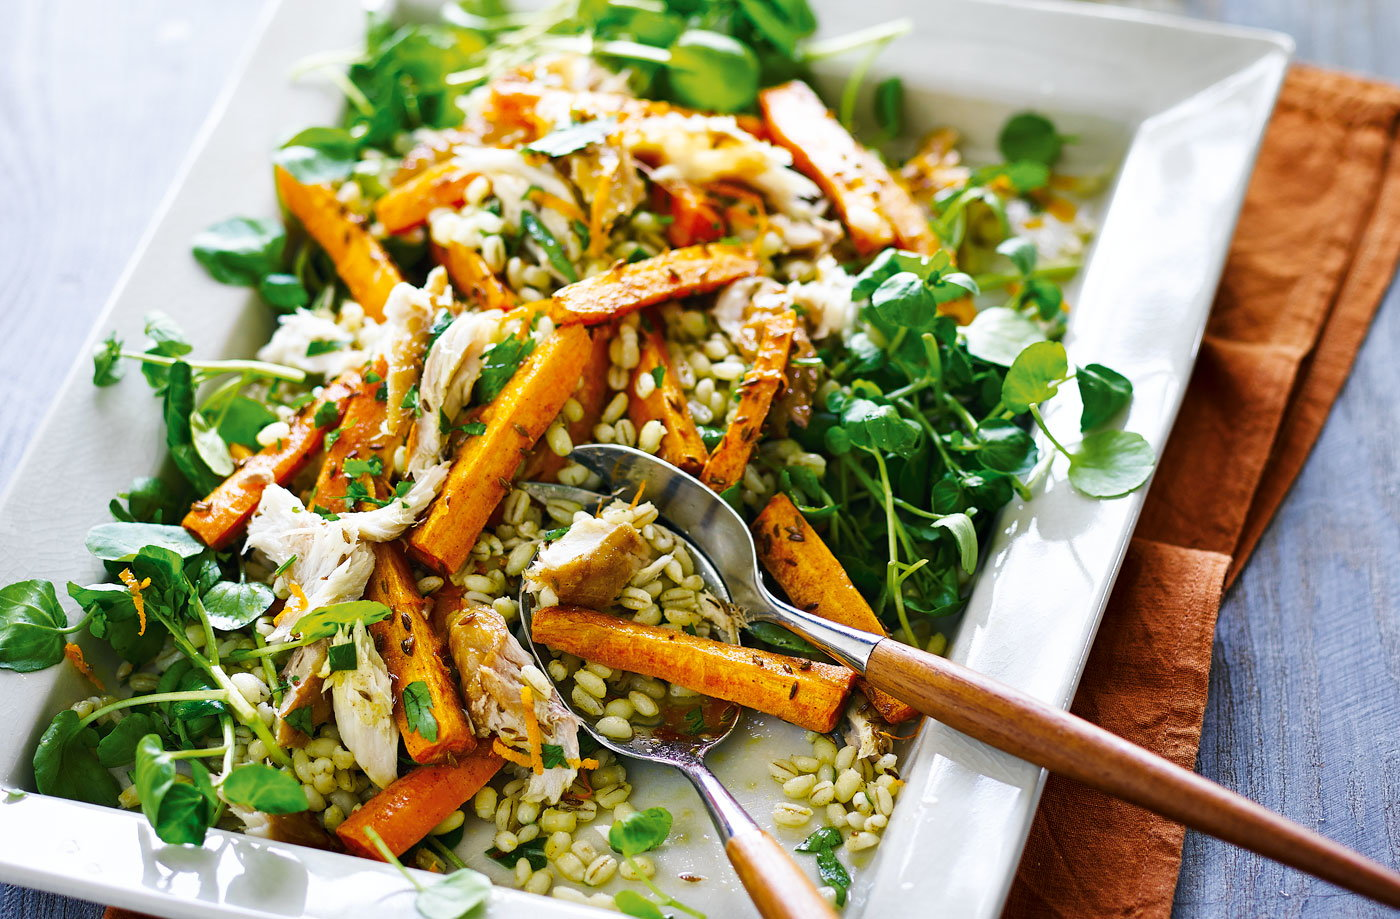 Roasted carrot, barley and smoked mackerel salad recipe